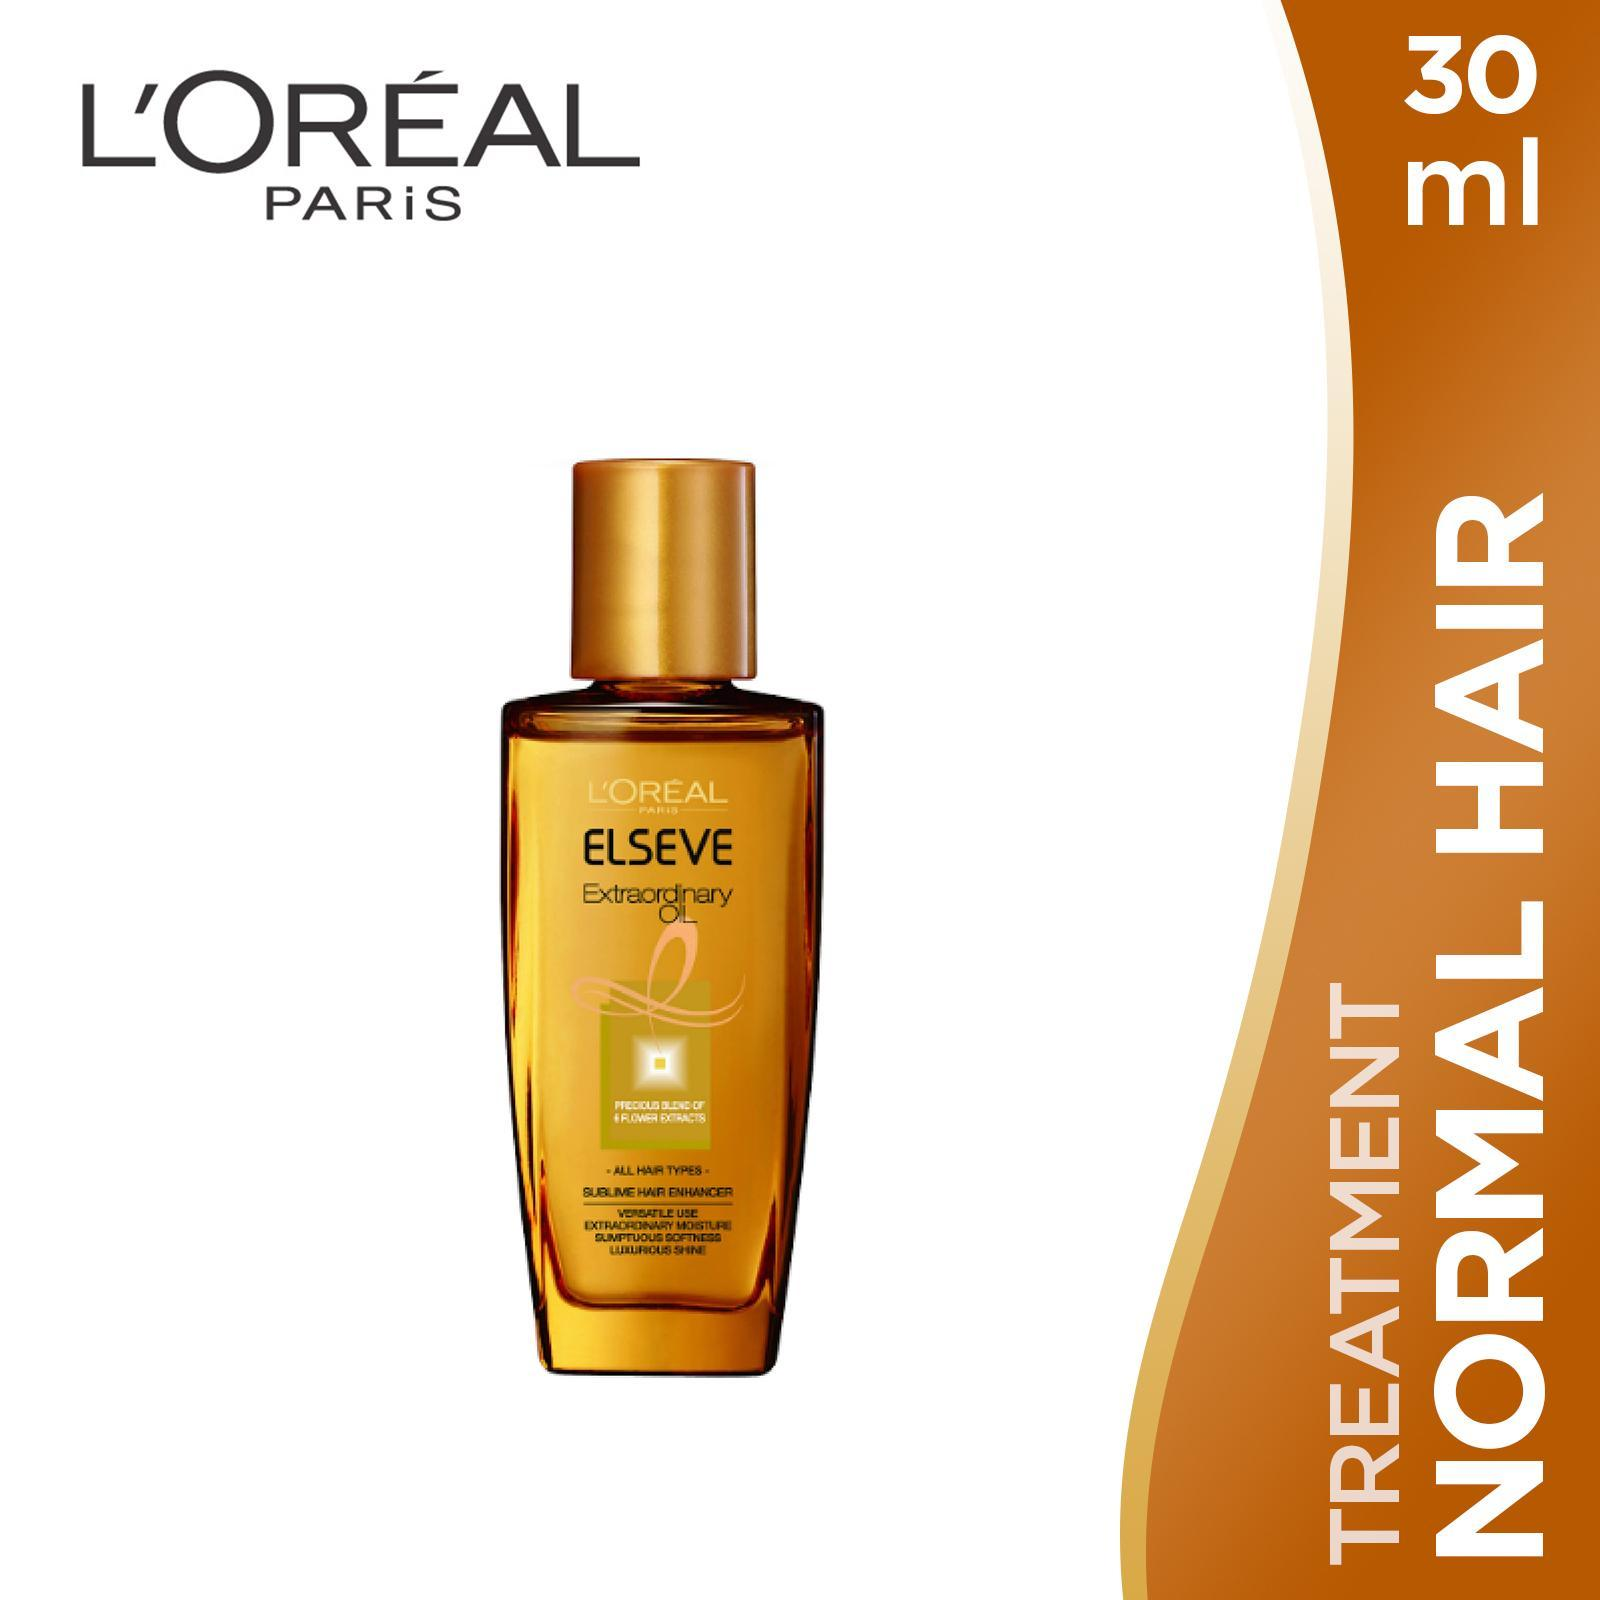 L'Oreal Hair Care Elseve Extraordinary Oil Gold, 30ml